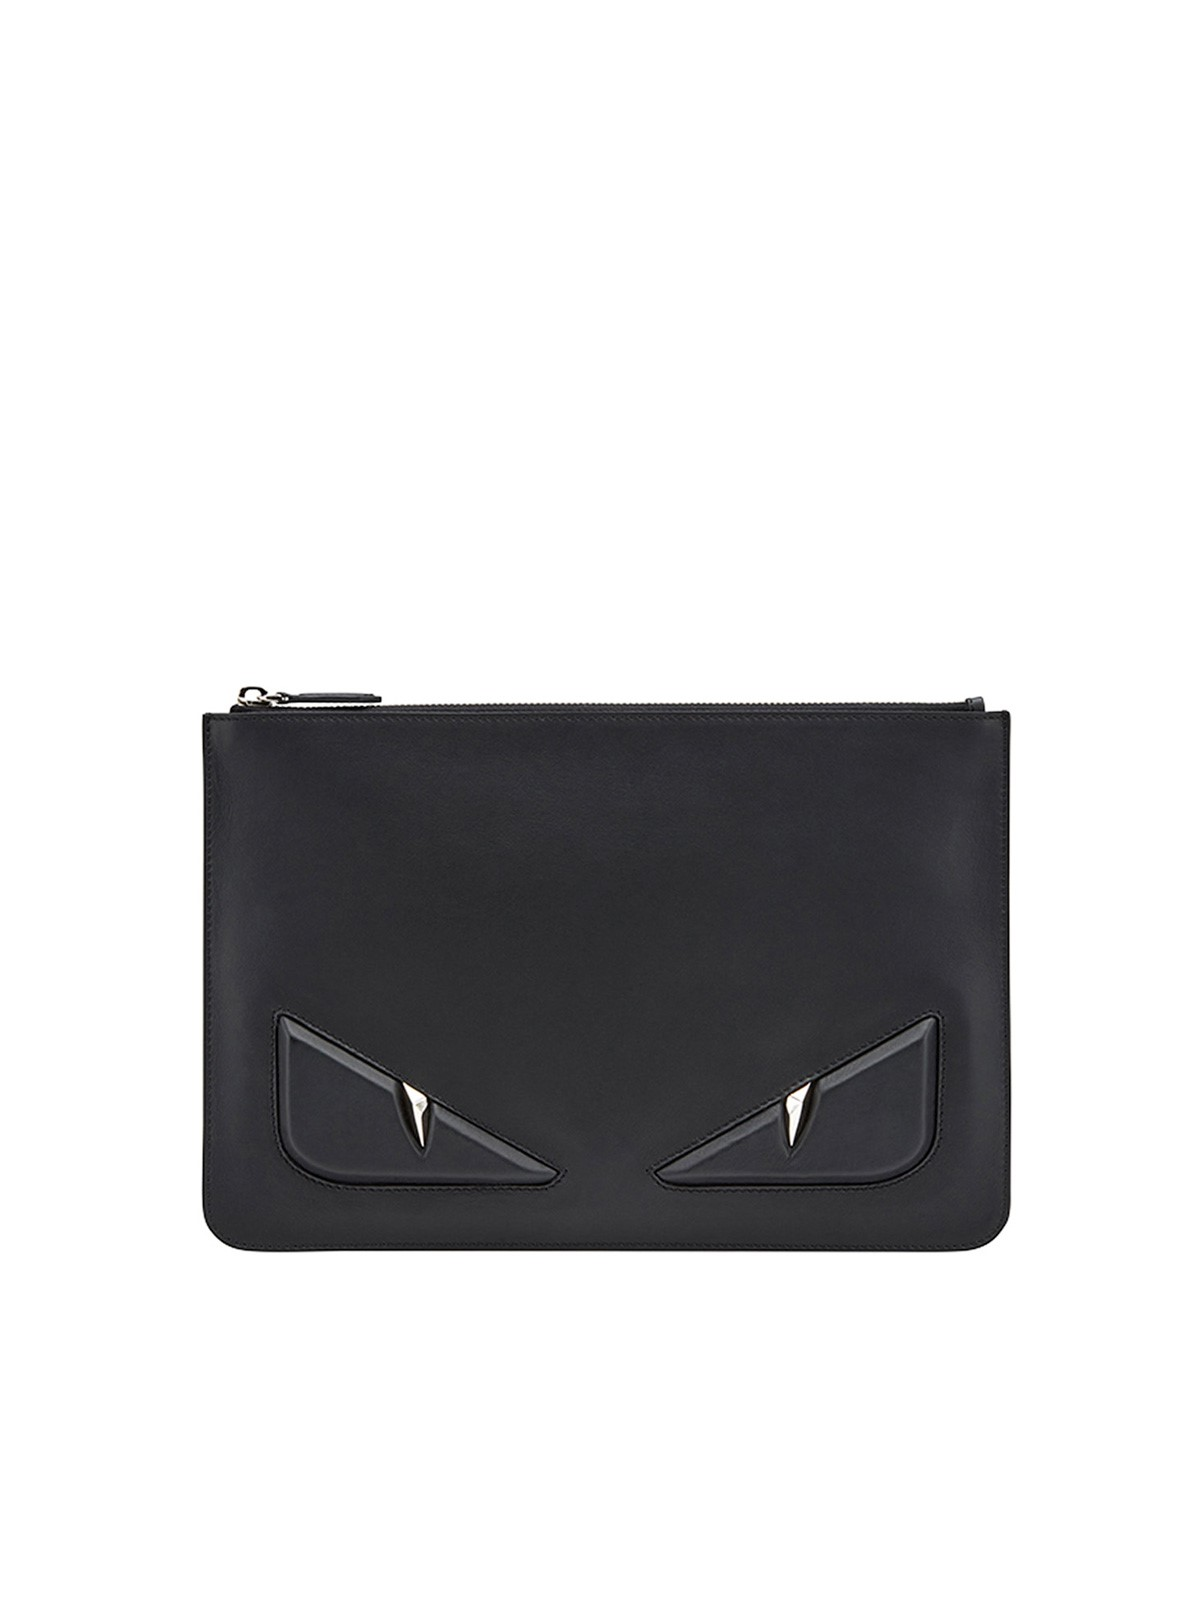 fendi BAG BUGS CLUTCH available on montiboutique.com - 21856 a31ae76f7fda7